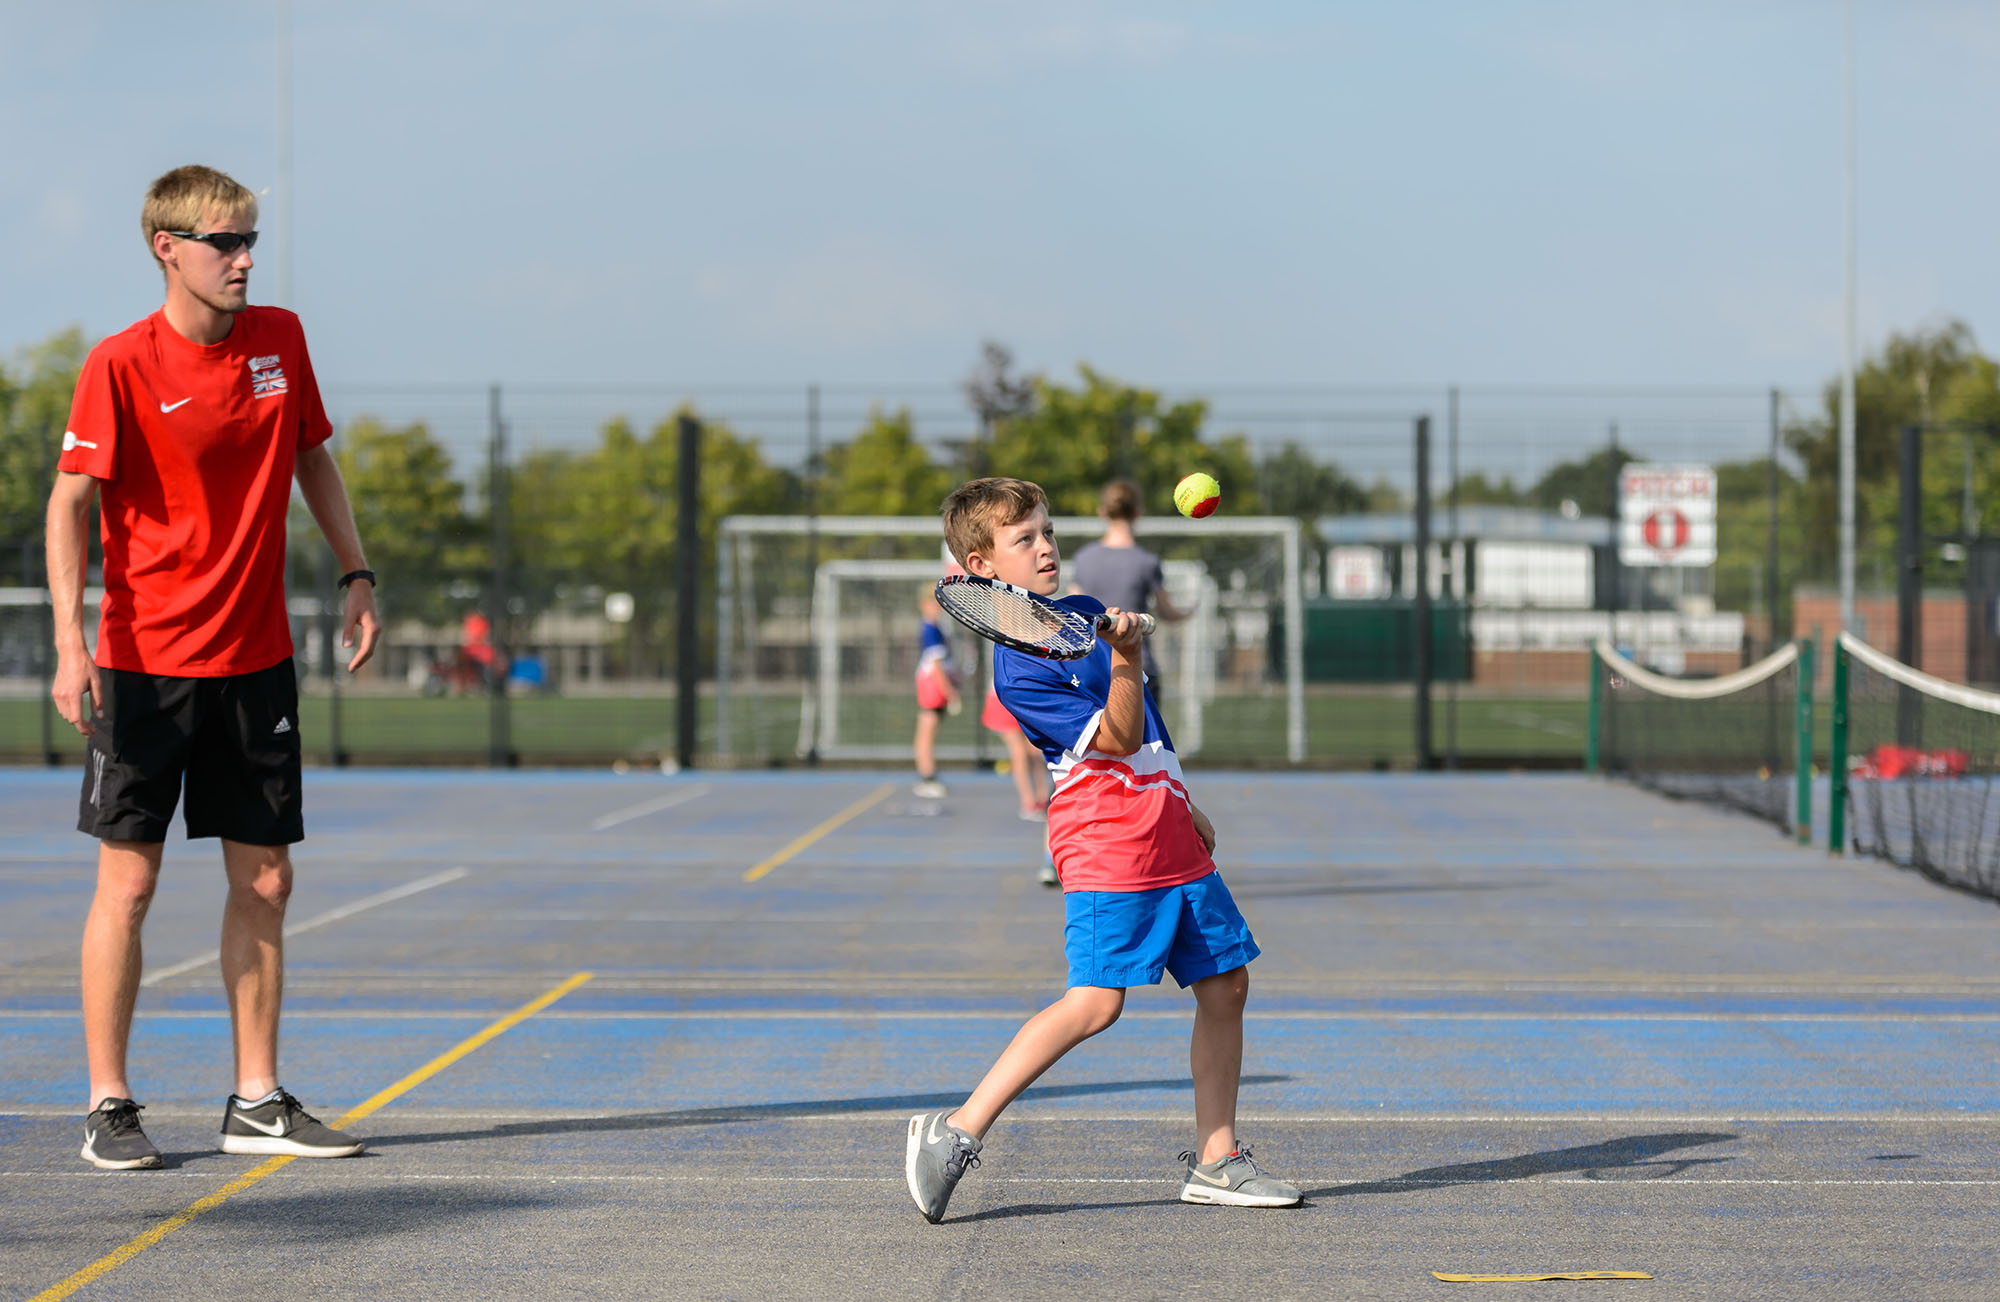 A boy playing a forehand as a coach looks on at a tennis session